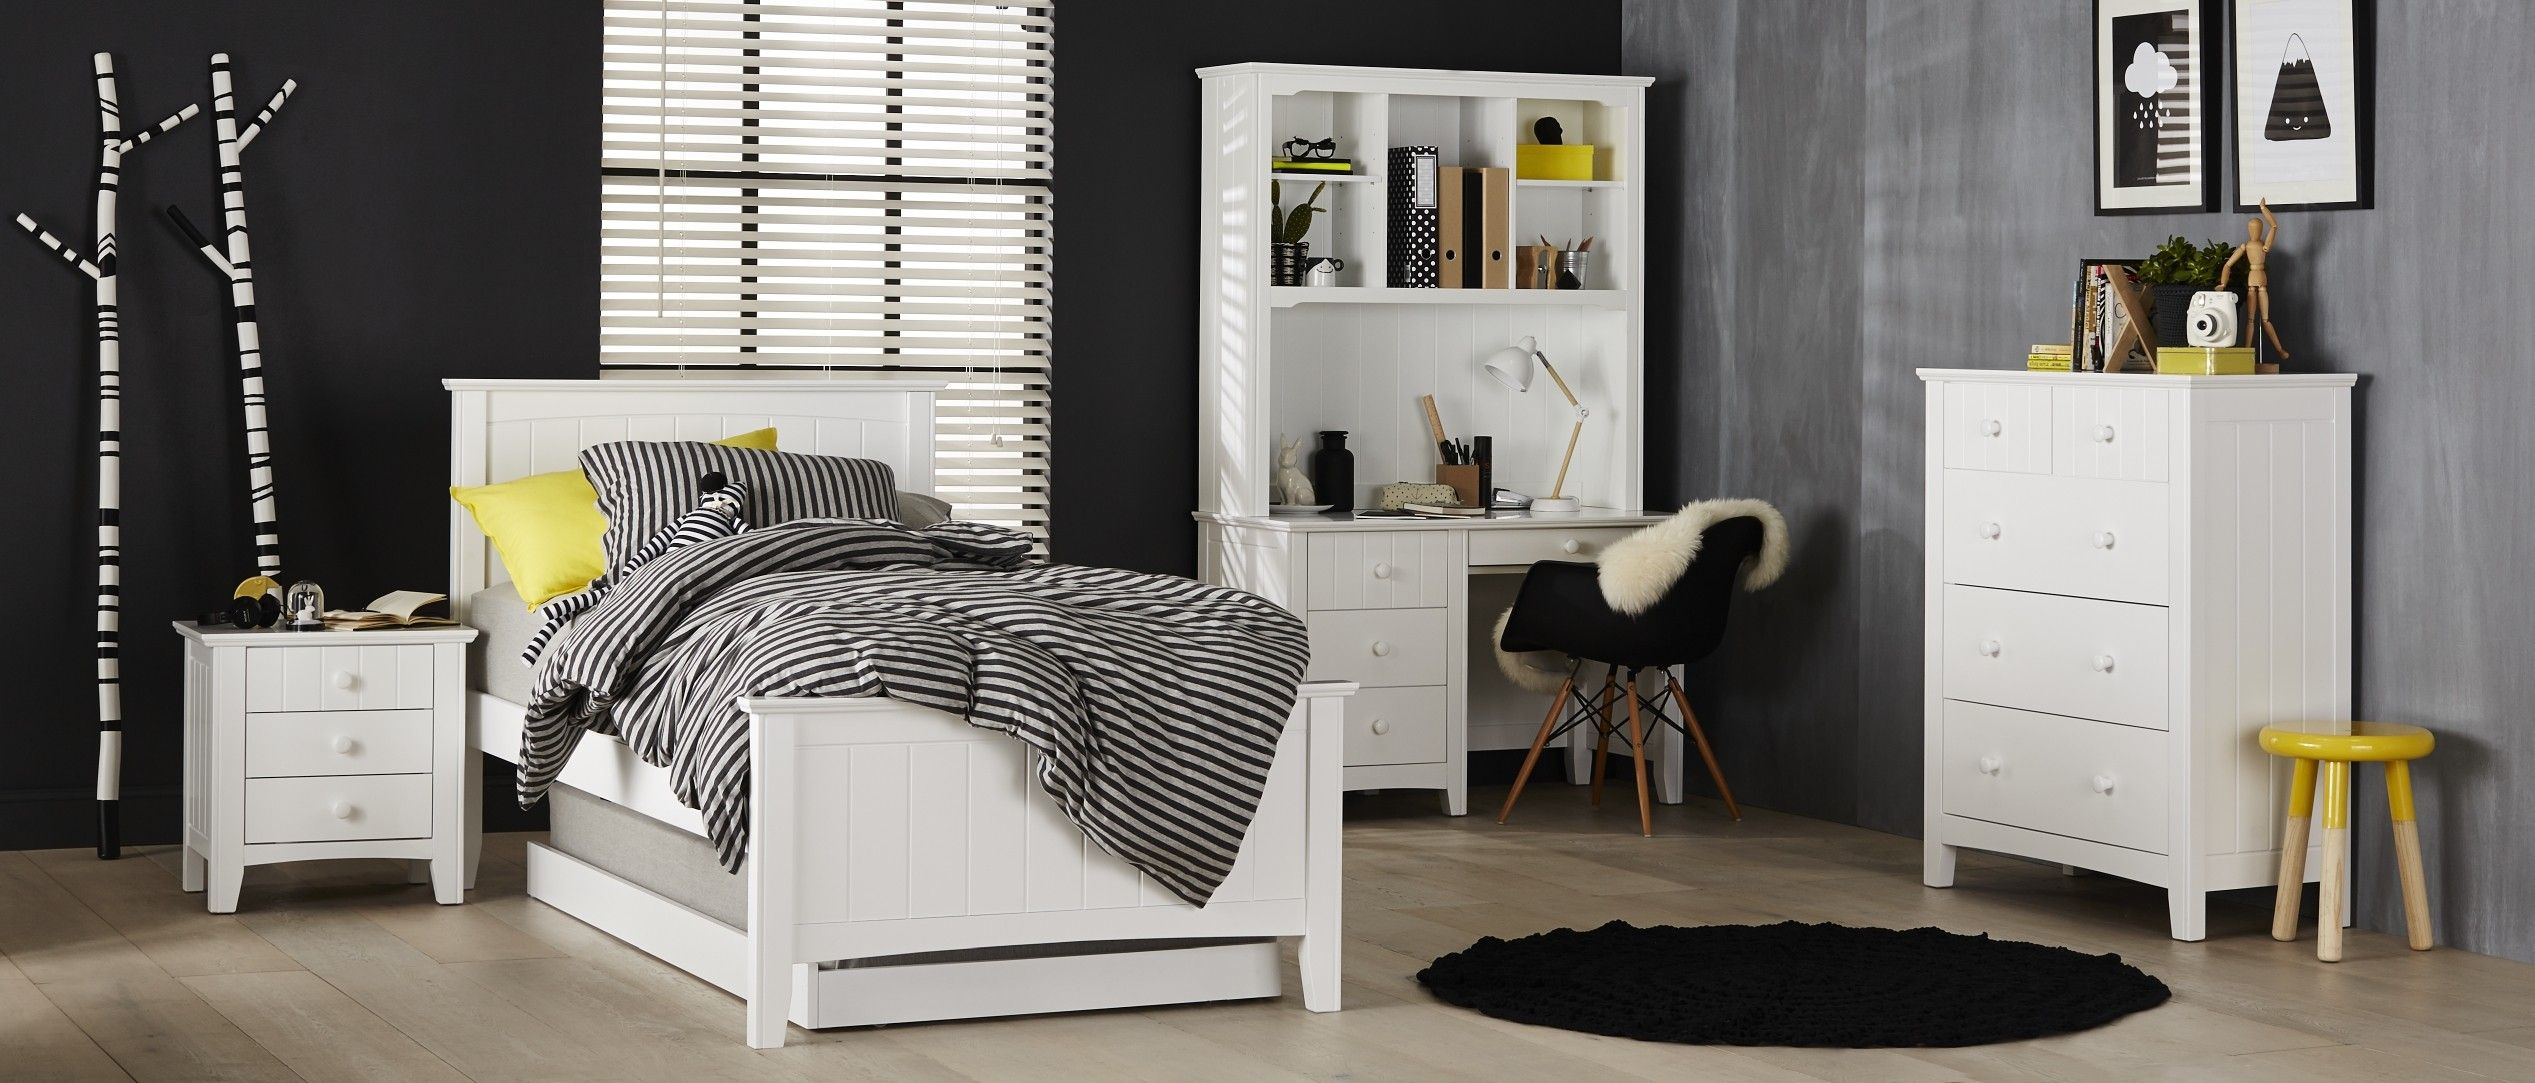 Noah Bedroom Furniture Every Tweens Dream Is Realised With The Suite High Bed Head And Foot End Adds A Hint Of Drama